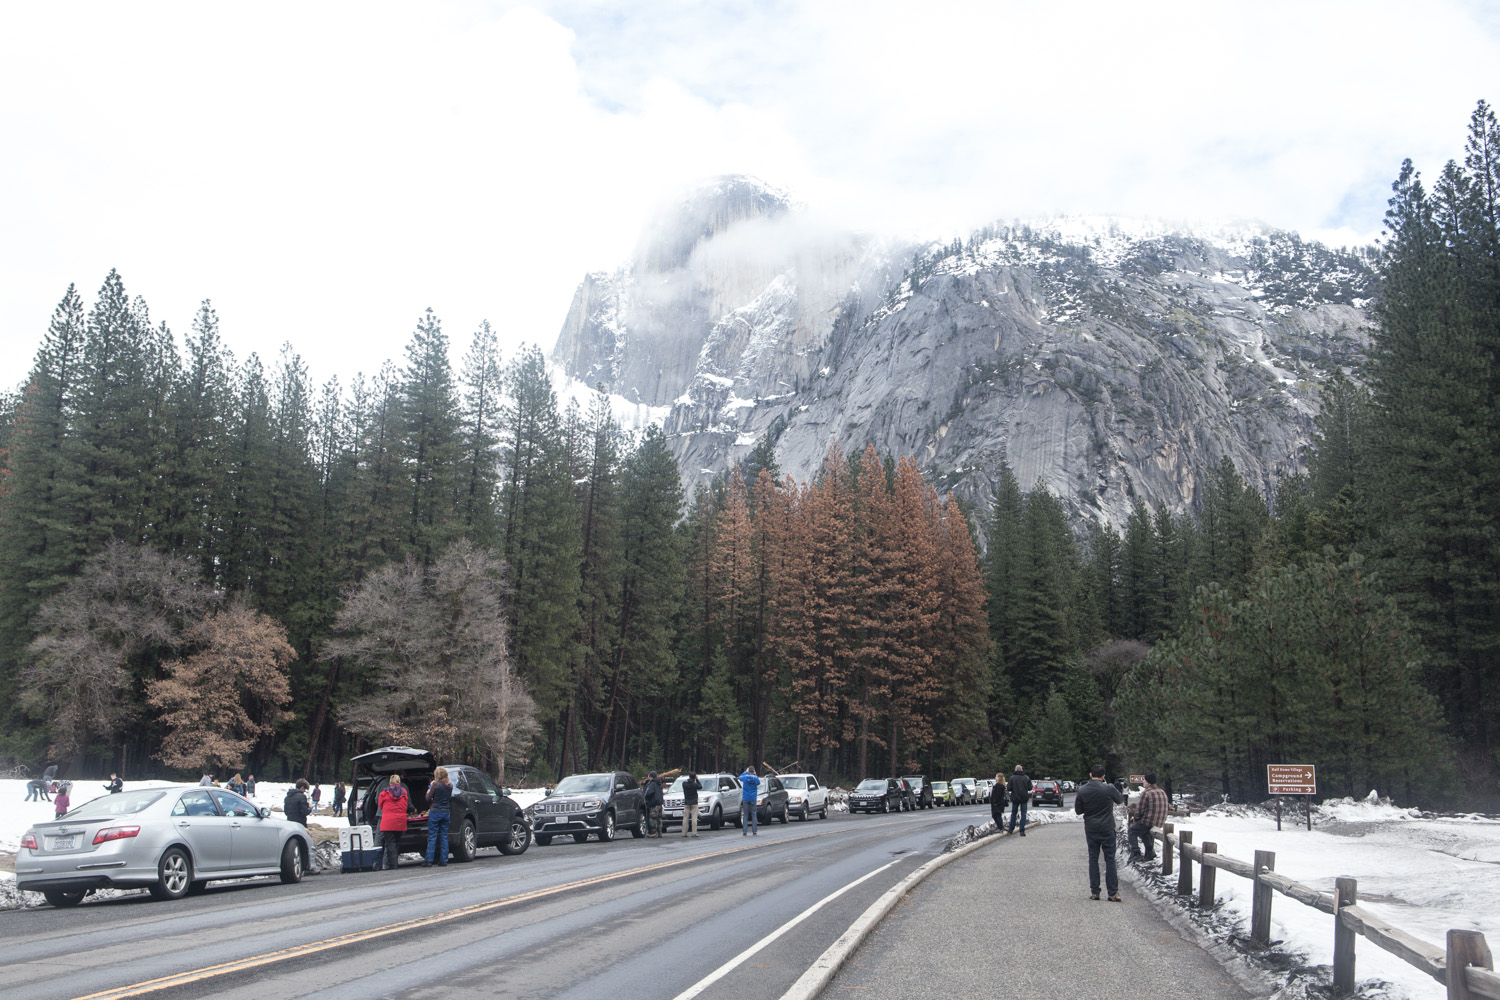 Road in Yosemite Valley in winter, with lots of people parked on the side of the road. Trees and a foggy view of a mountain are in the background.